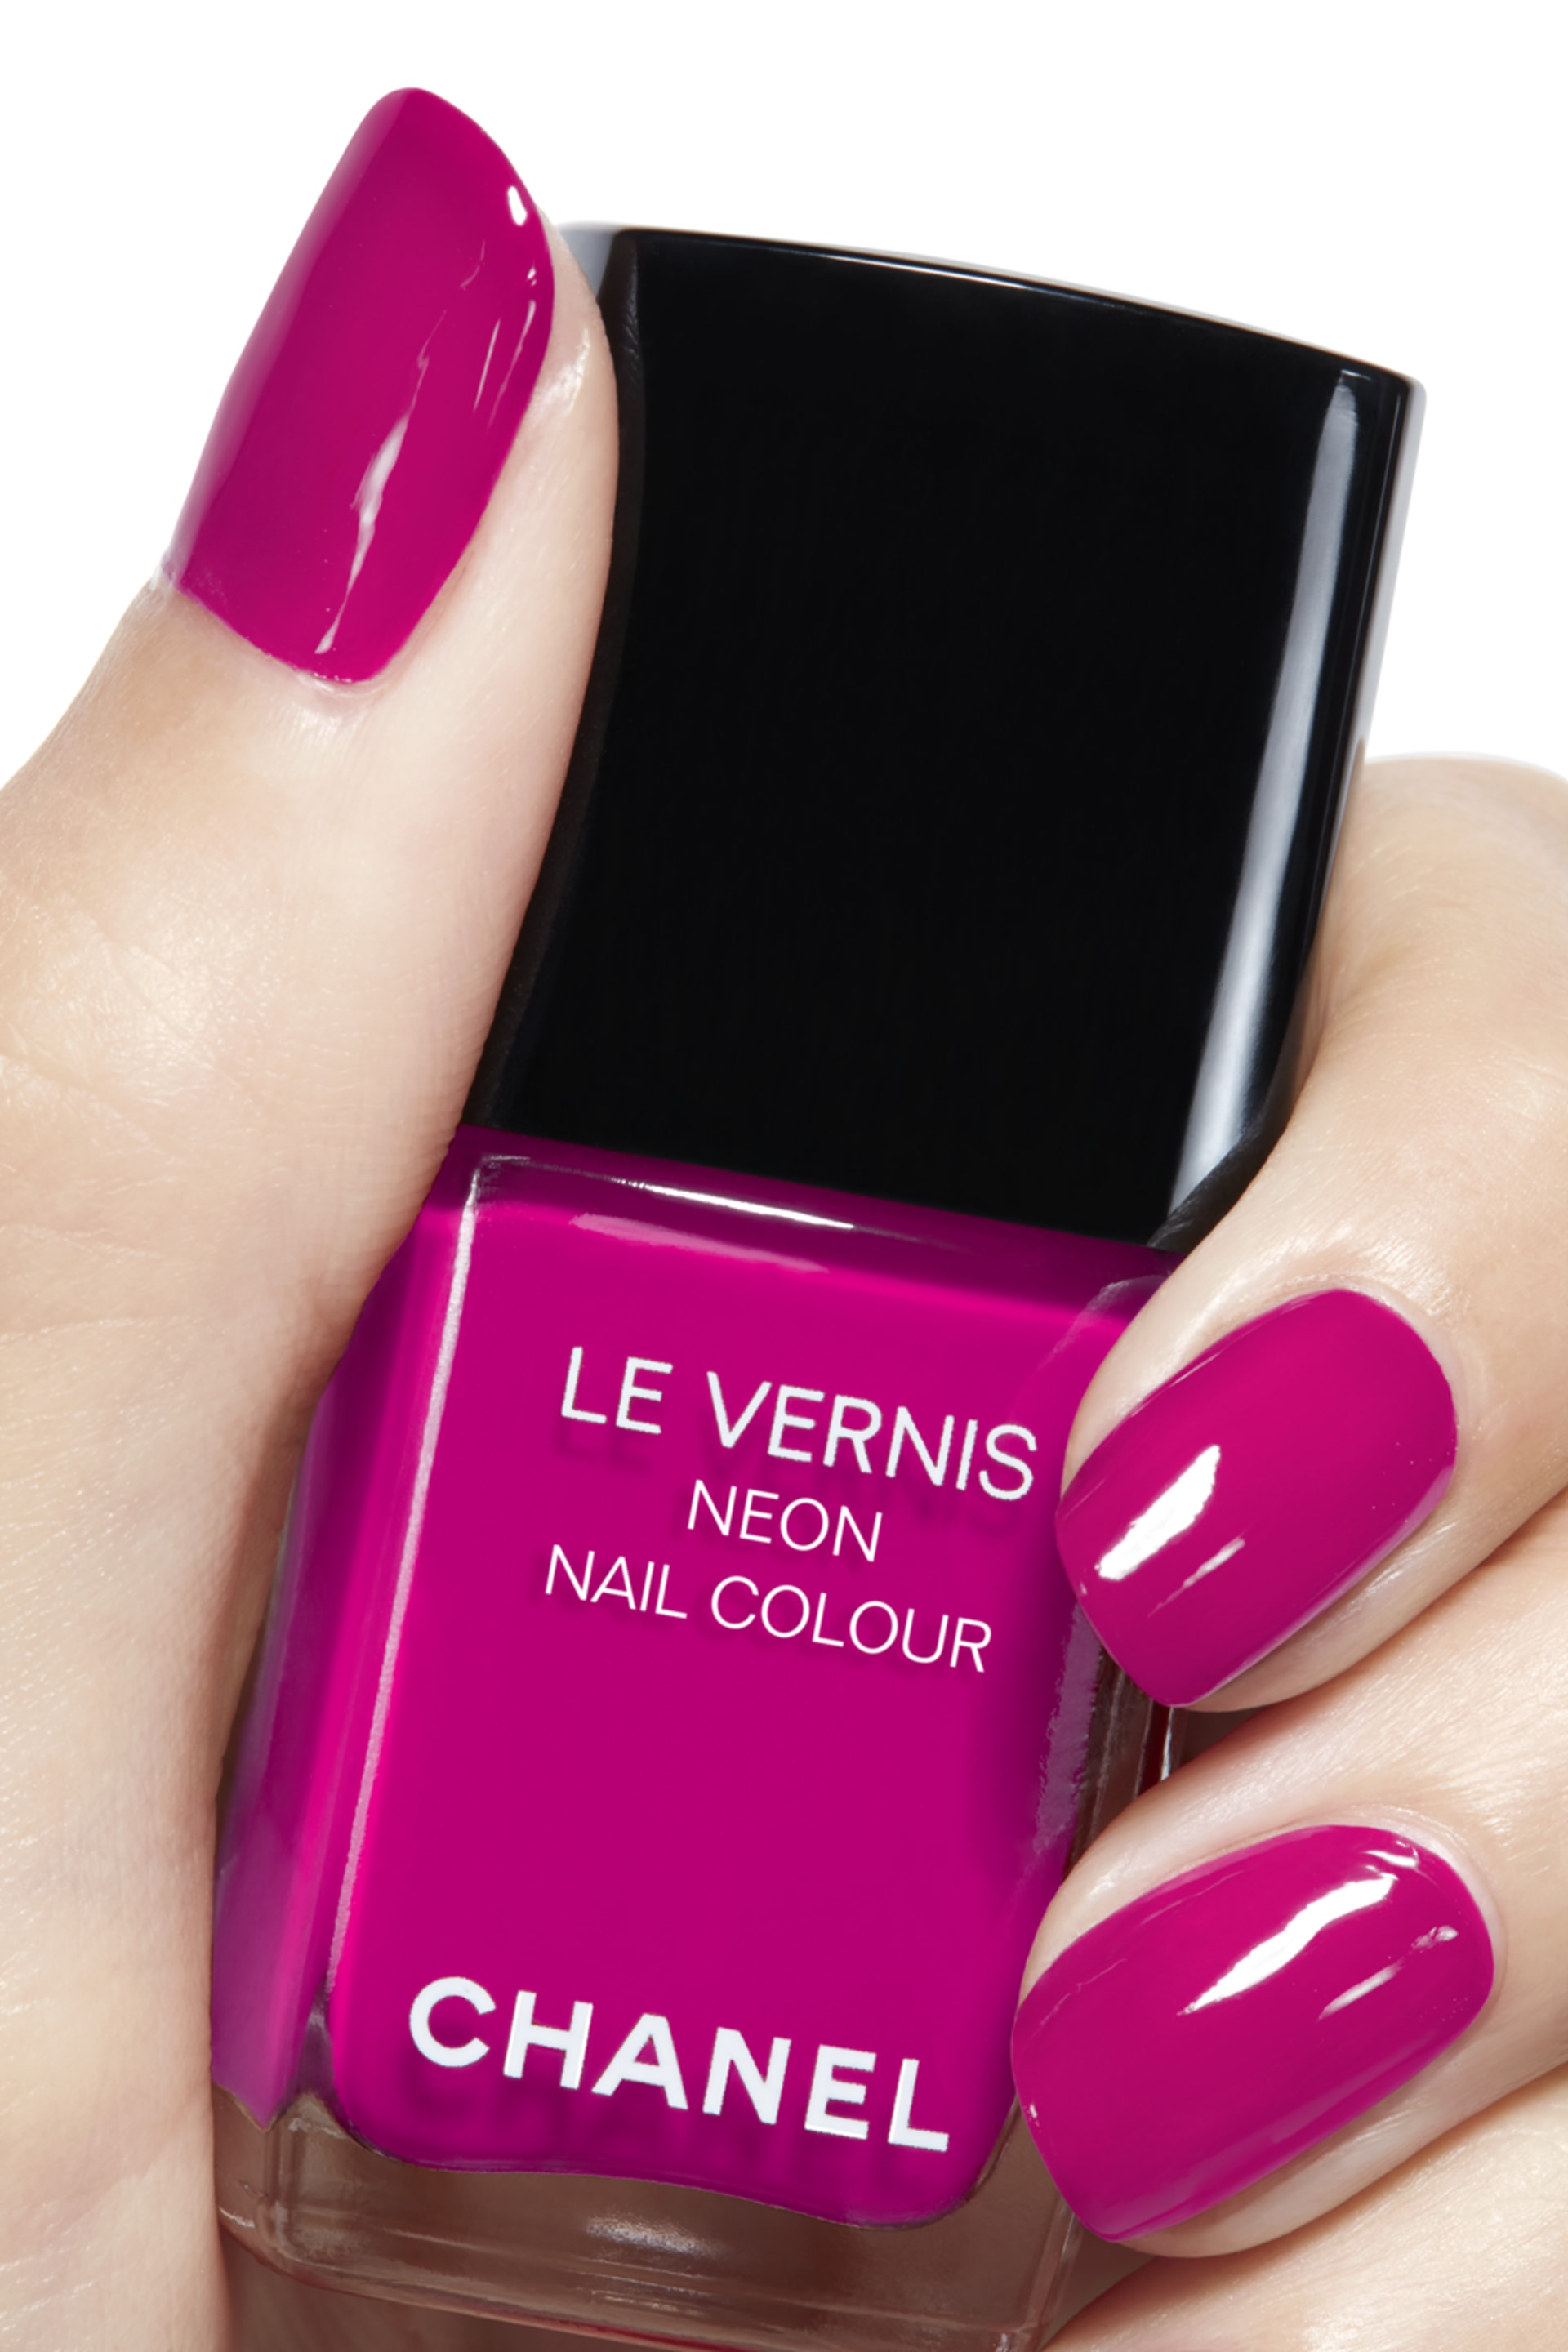 Application makeup visual 2 - LE VERNIS NEON NAIL COLOUR 648 - TECHNO BLOOM